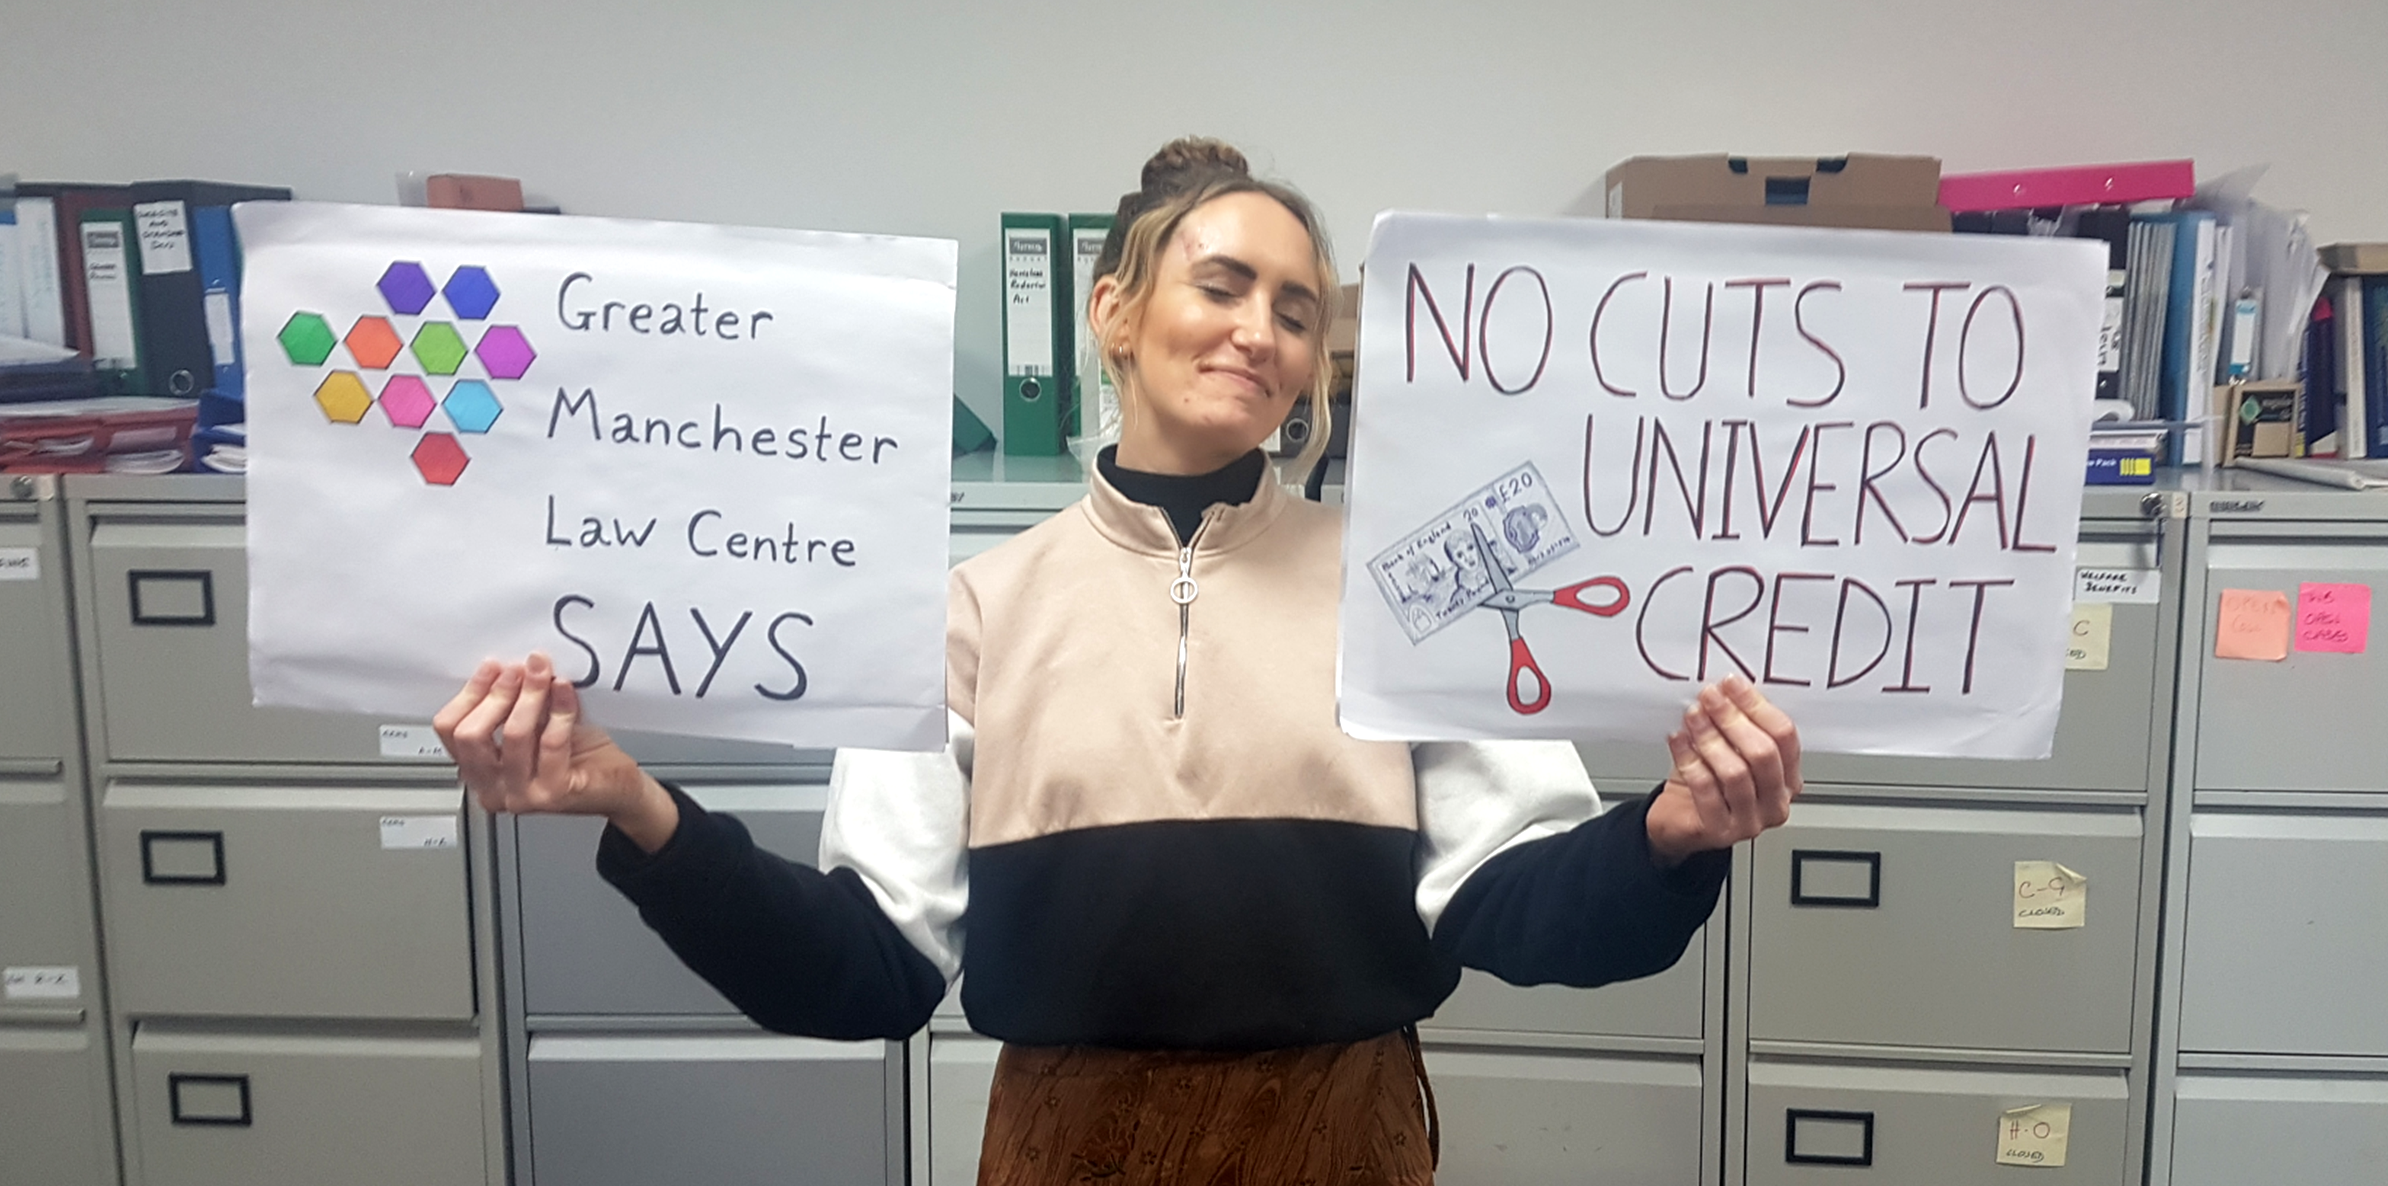 """Image showing our staff member Josie holding up two placards,one on the left that says """"Greater Manchester Law Centre Says"""" and on the right says """"No cuts to universal credit"""". Josie is smiling and the background is the GMLC office - mostly grey filing cabinets."""